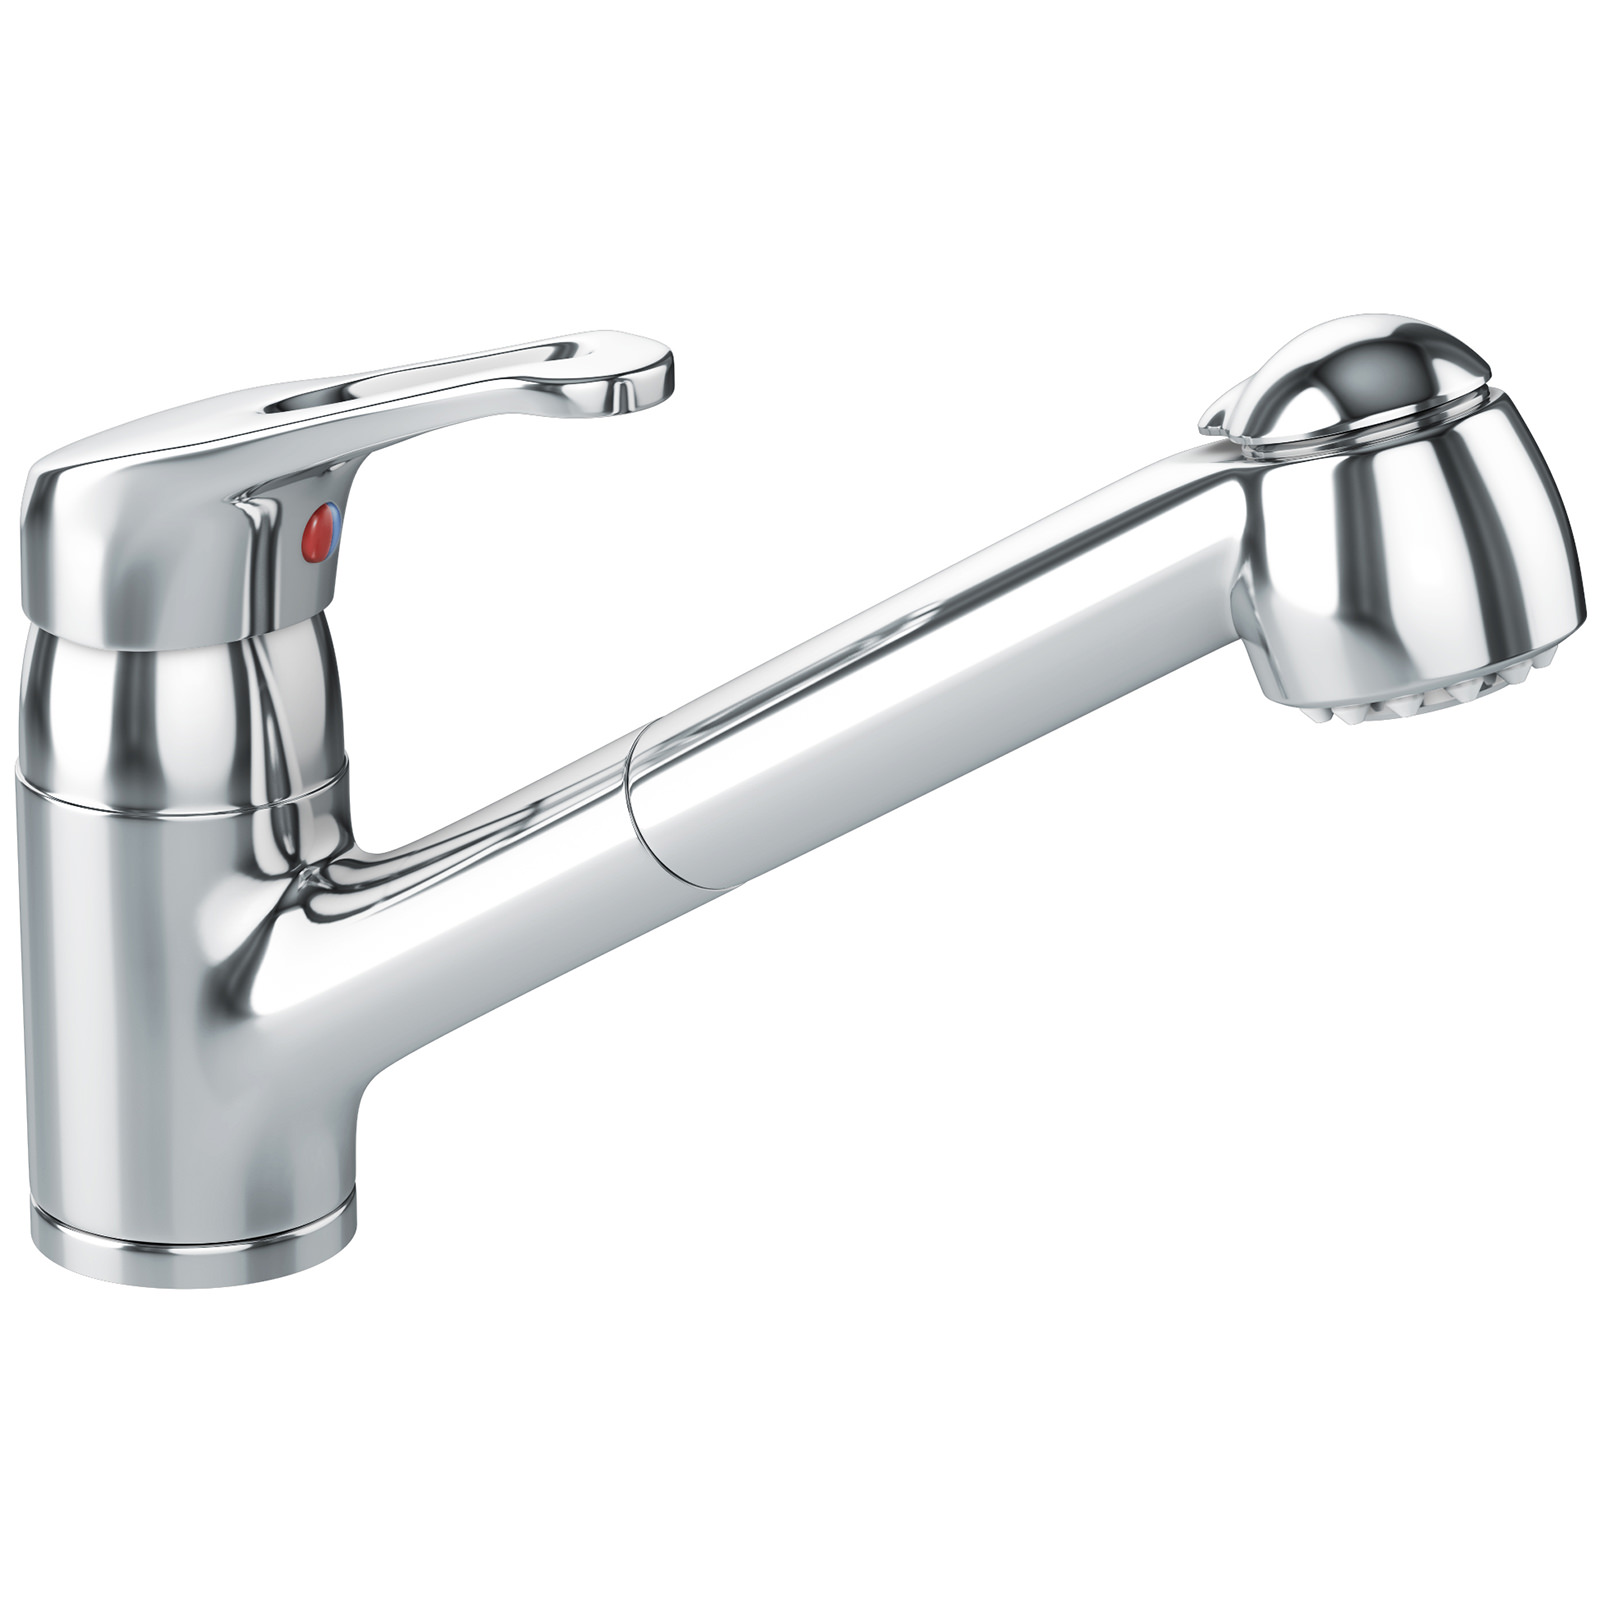 Franke Swing Spray Kitchen Sink Mixer Tap